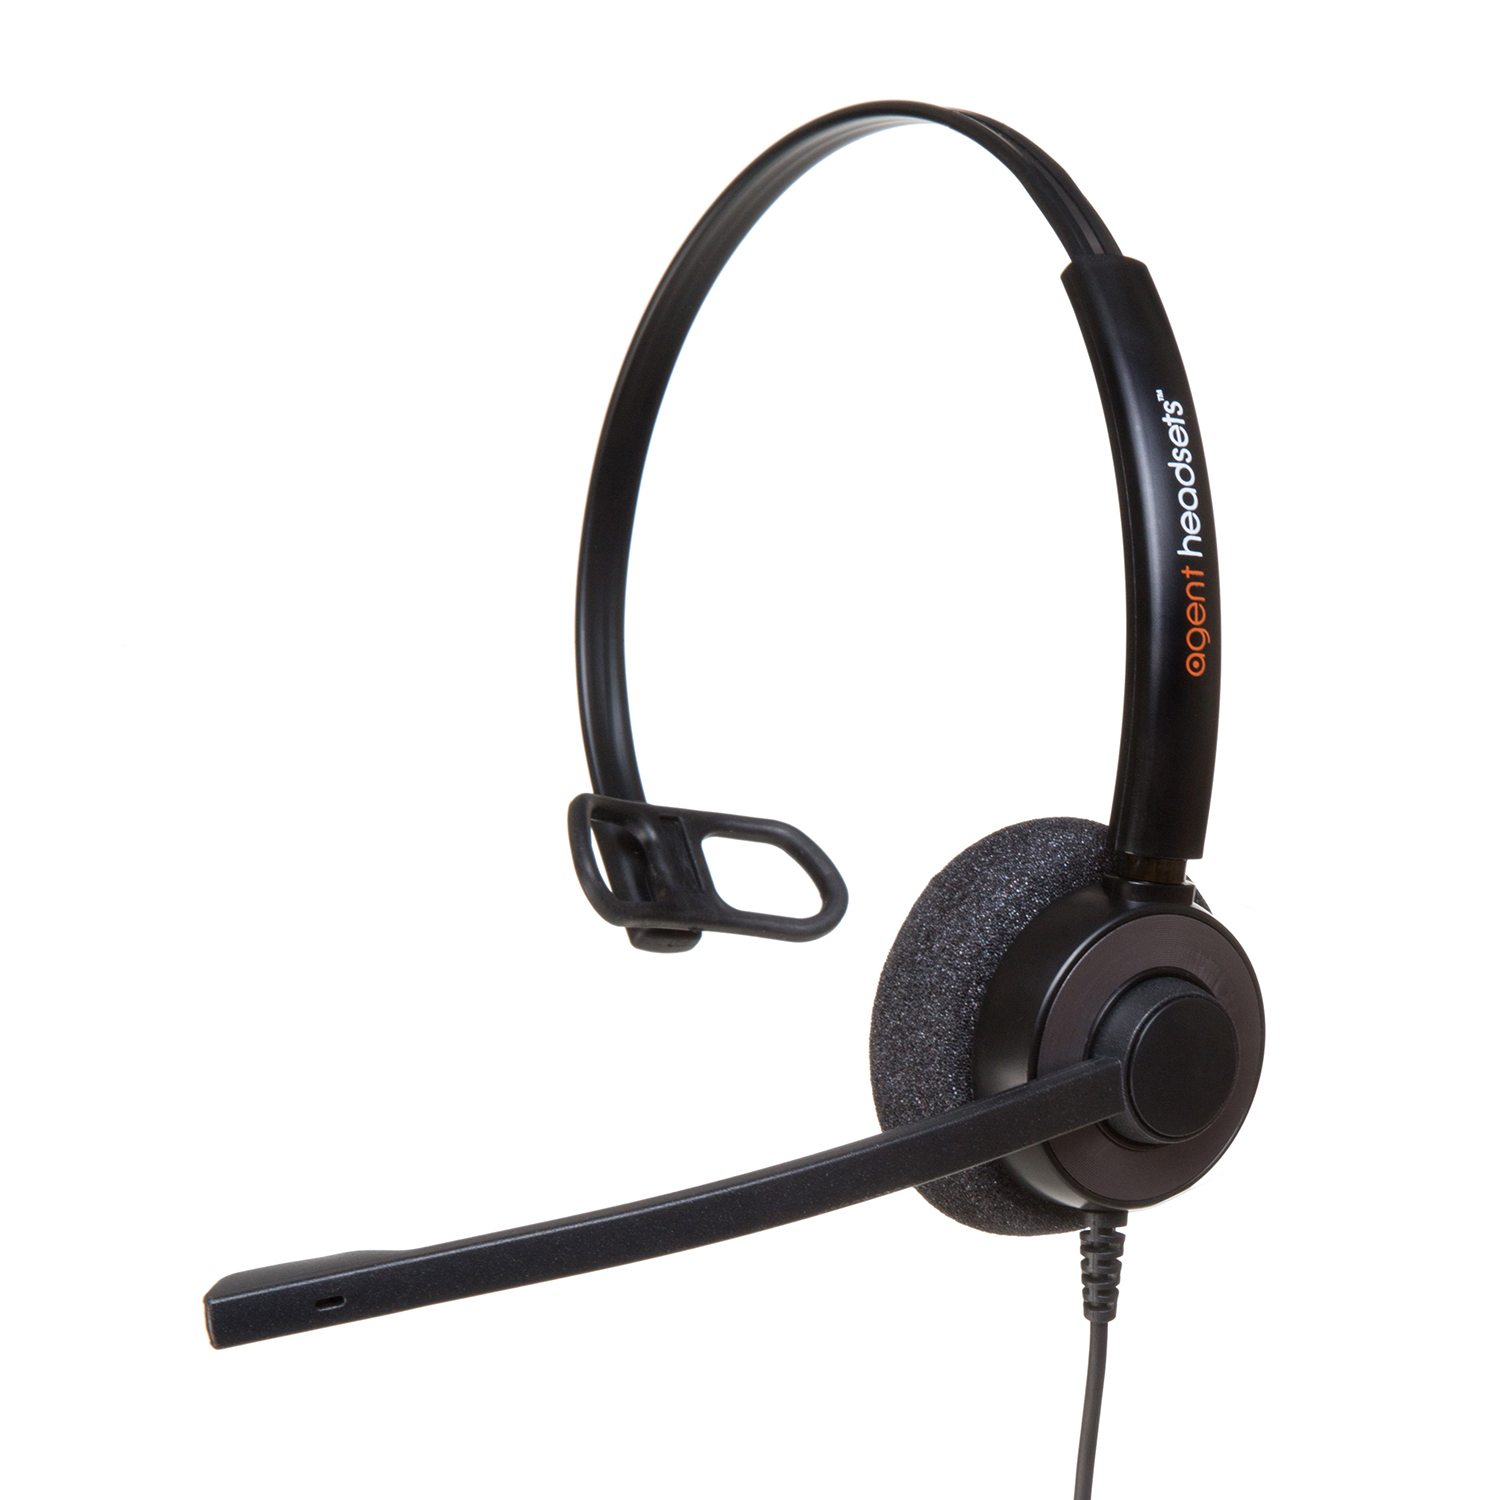 Agent 350 Monaural NC Headset